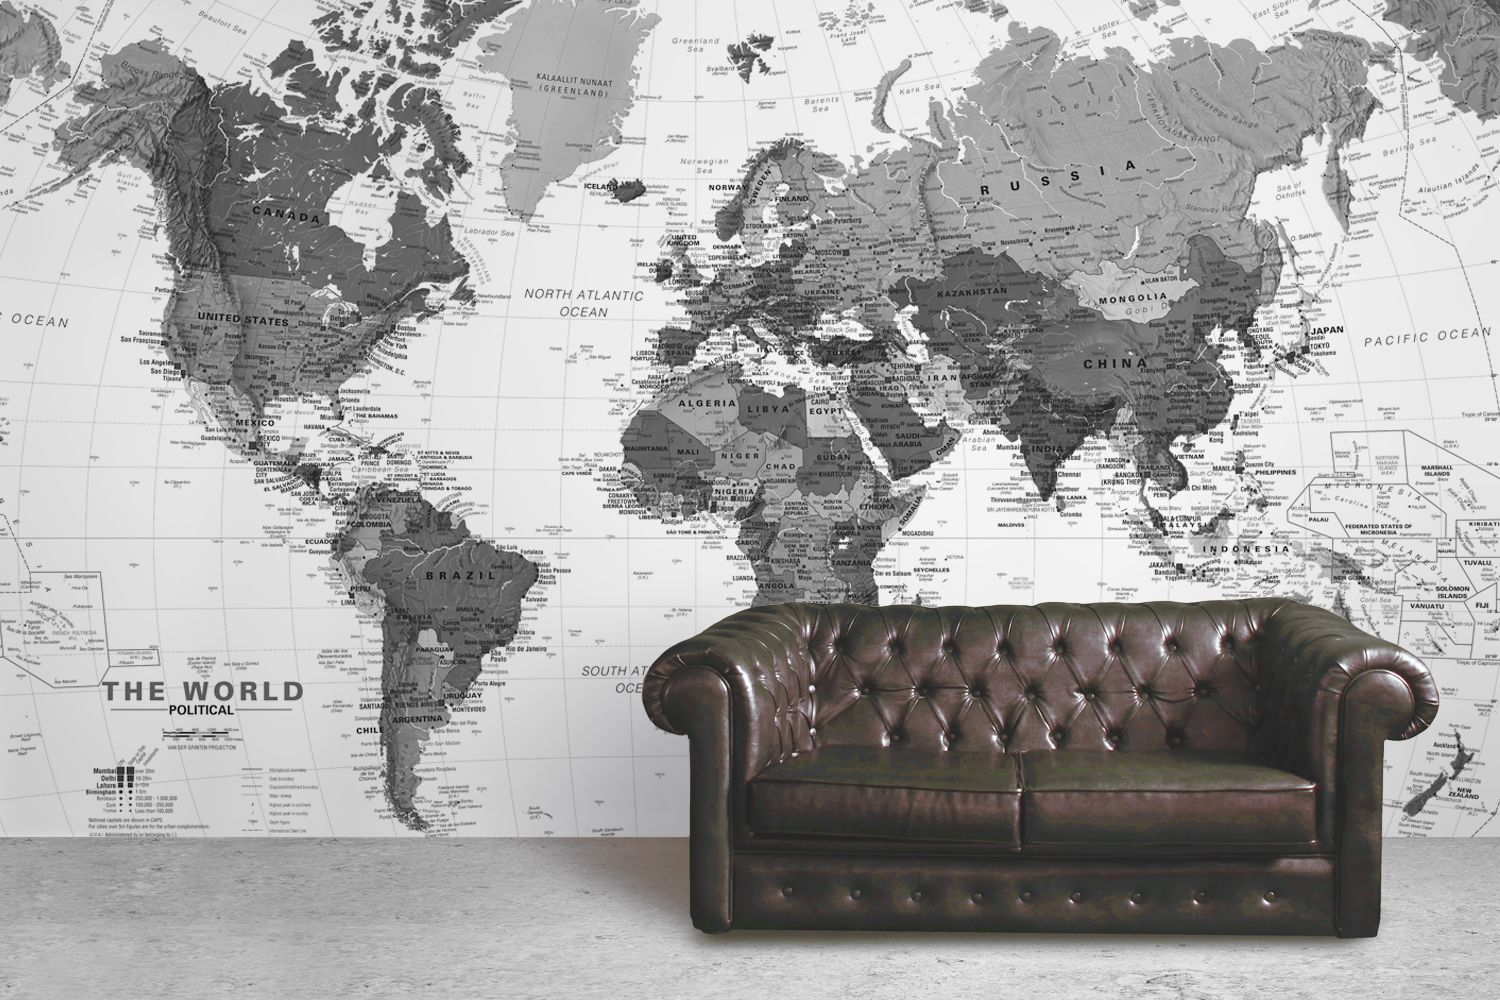 Capital city world map wall mural muralswallpaper design black and white detailed map mural gumiabroncs Choice Image